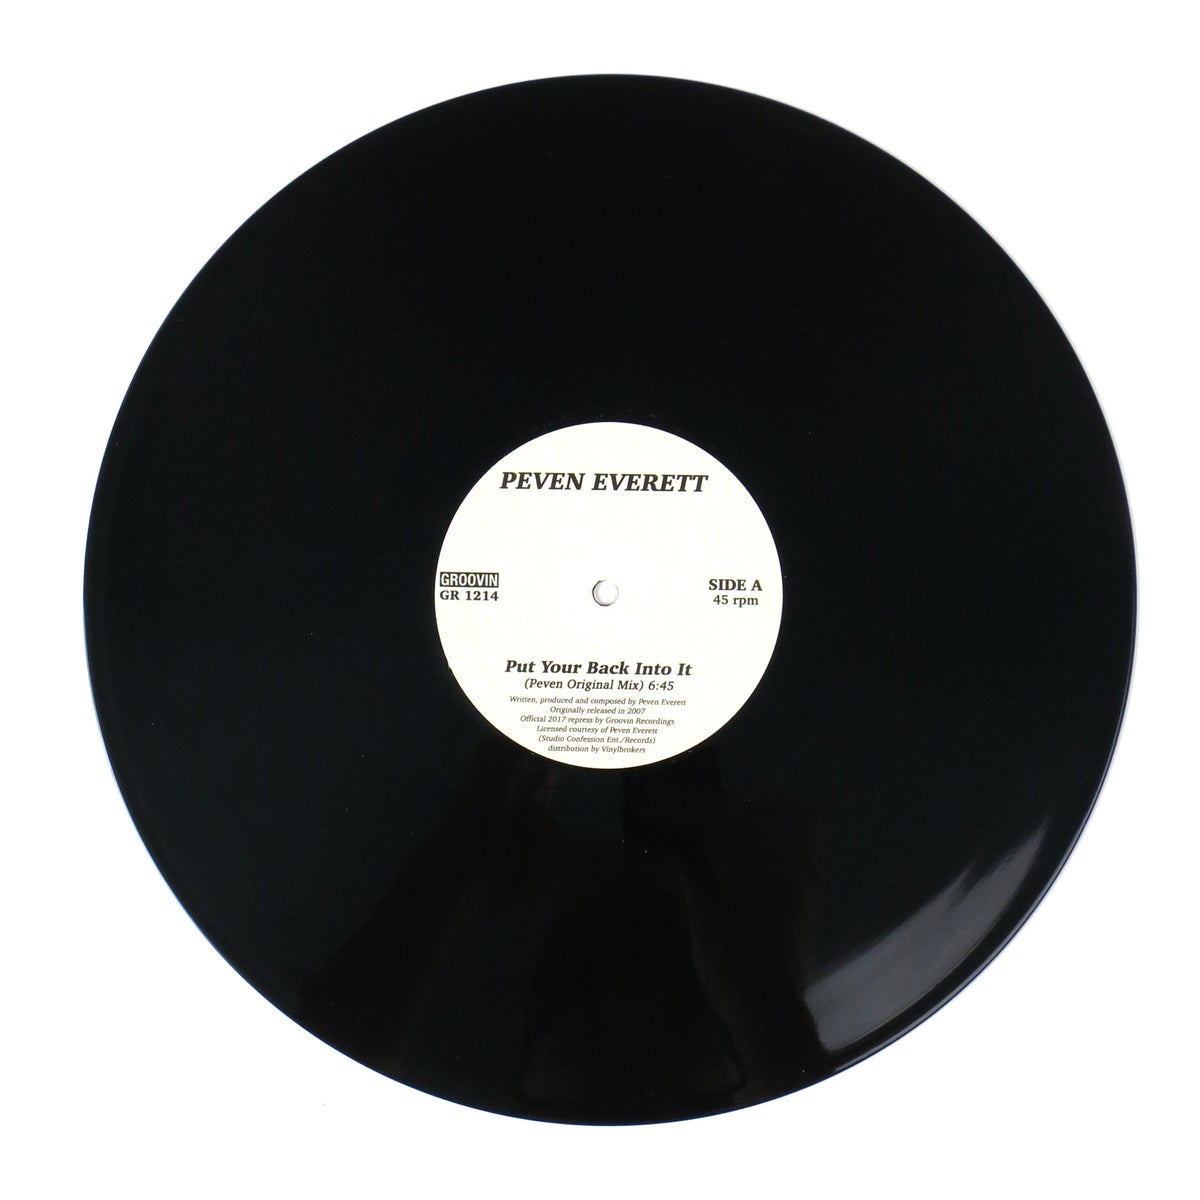 Peven Everett: Put Your Back Into It Vinyl 12""